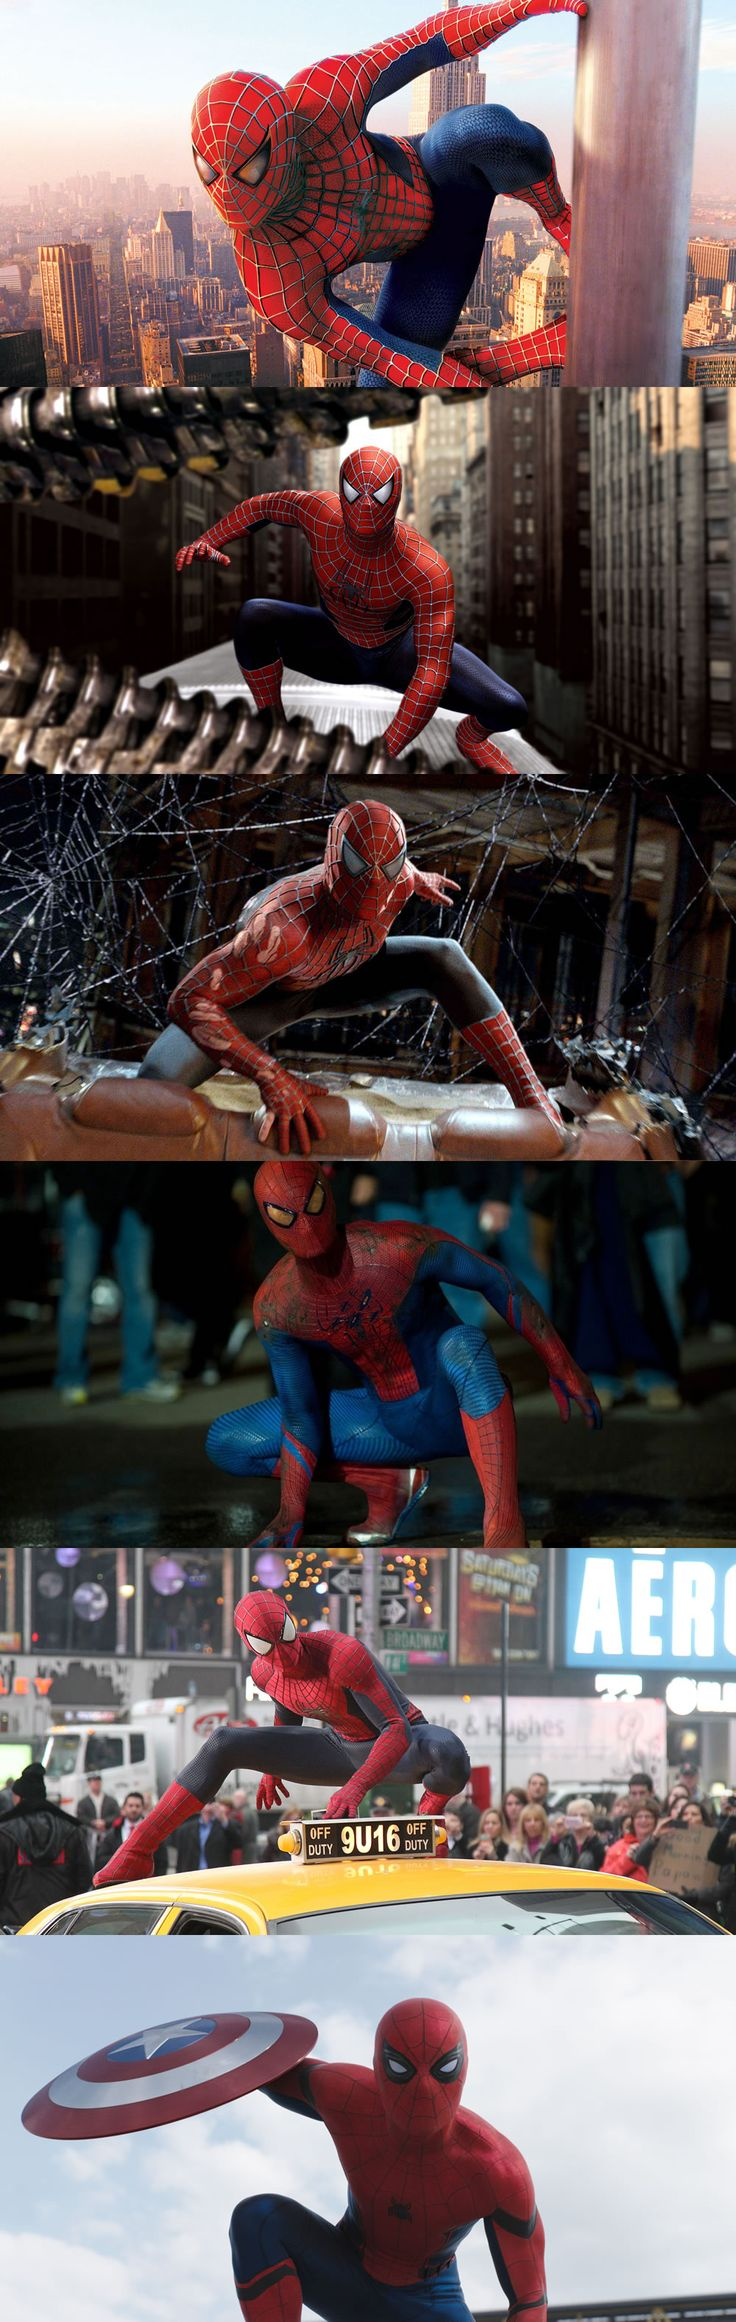 MARVEL COMICS: SPIDER-MAN - MOVIES